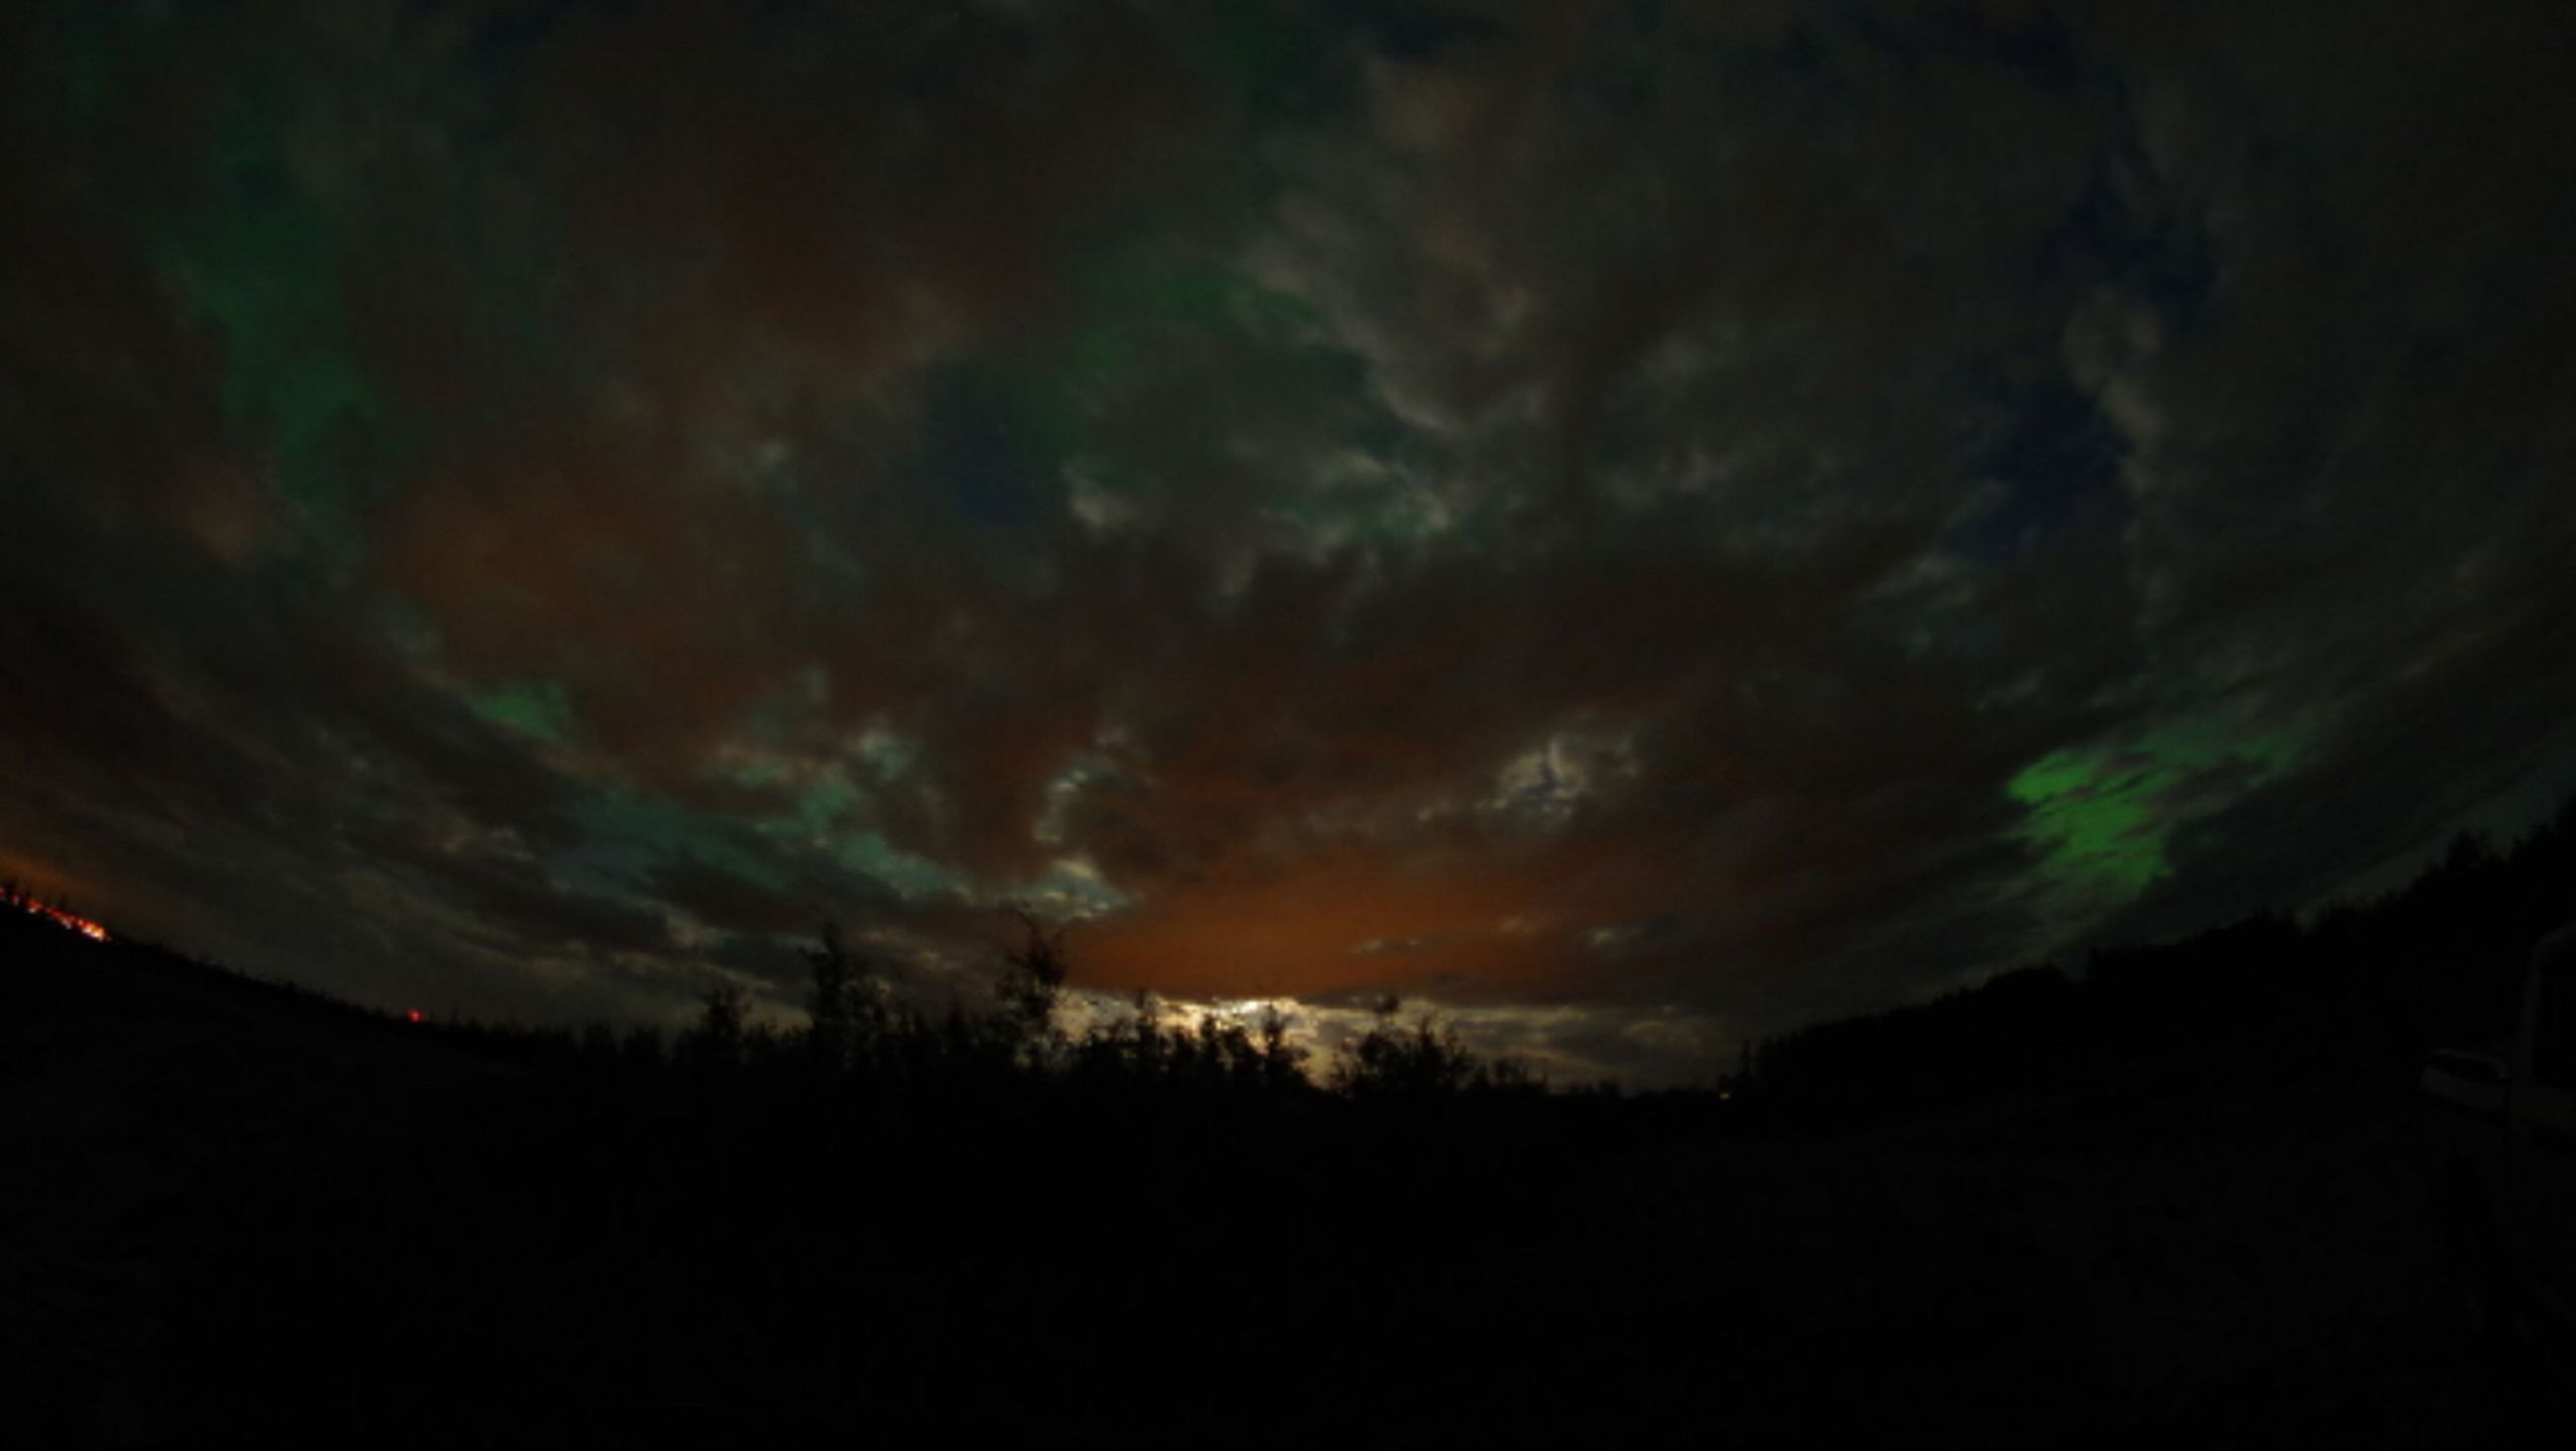 sky, scenics, silhouette, tranquil scene, tranquility, beauty in nature, cloud - sky, tree, nature, cloudy, landscape, dramatic sky, idyllic, dark, dusk, storm cloud, sunset, weather, night, overcast